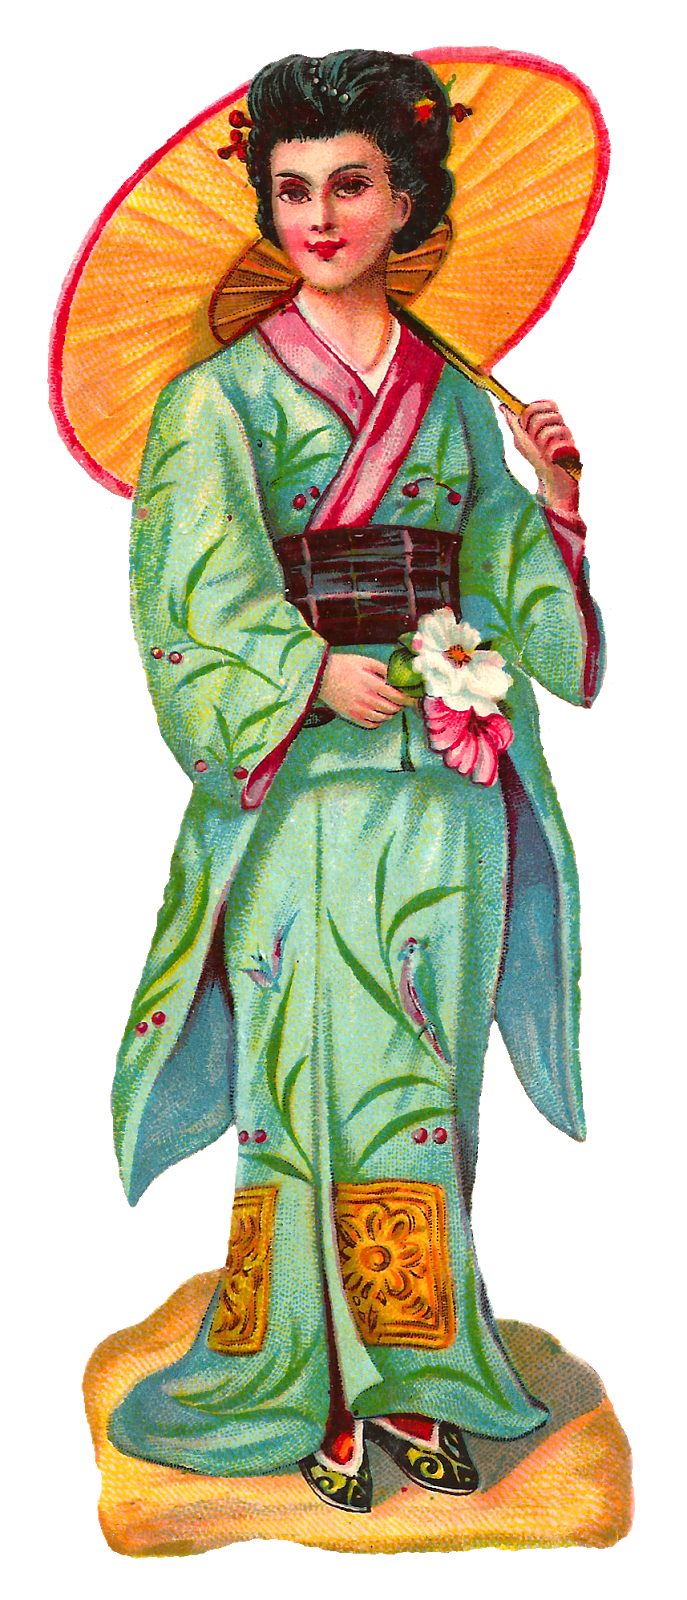 Antique images royalty free. Japanese clipart clothes japanese